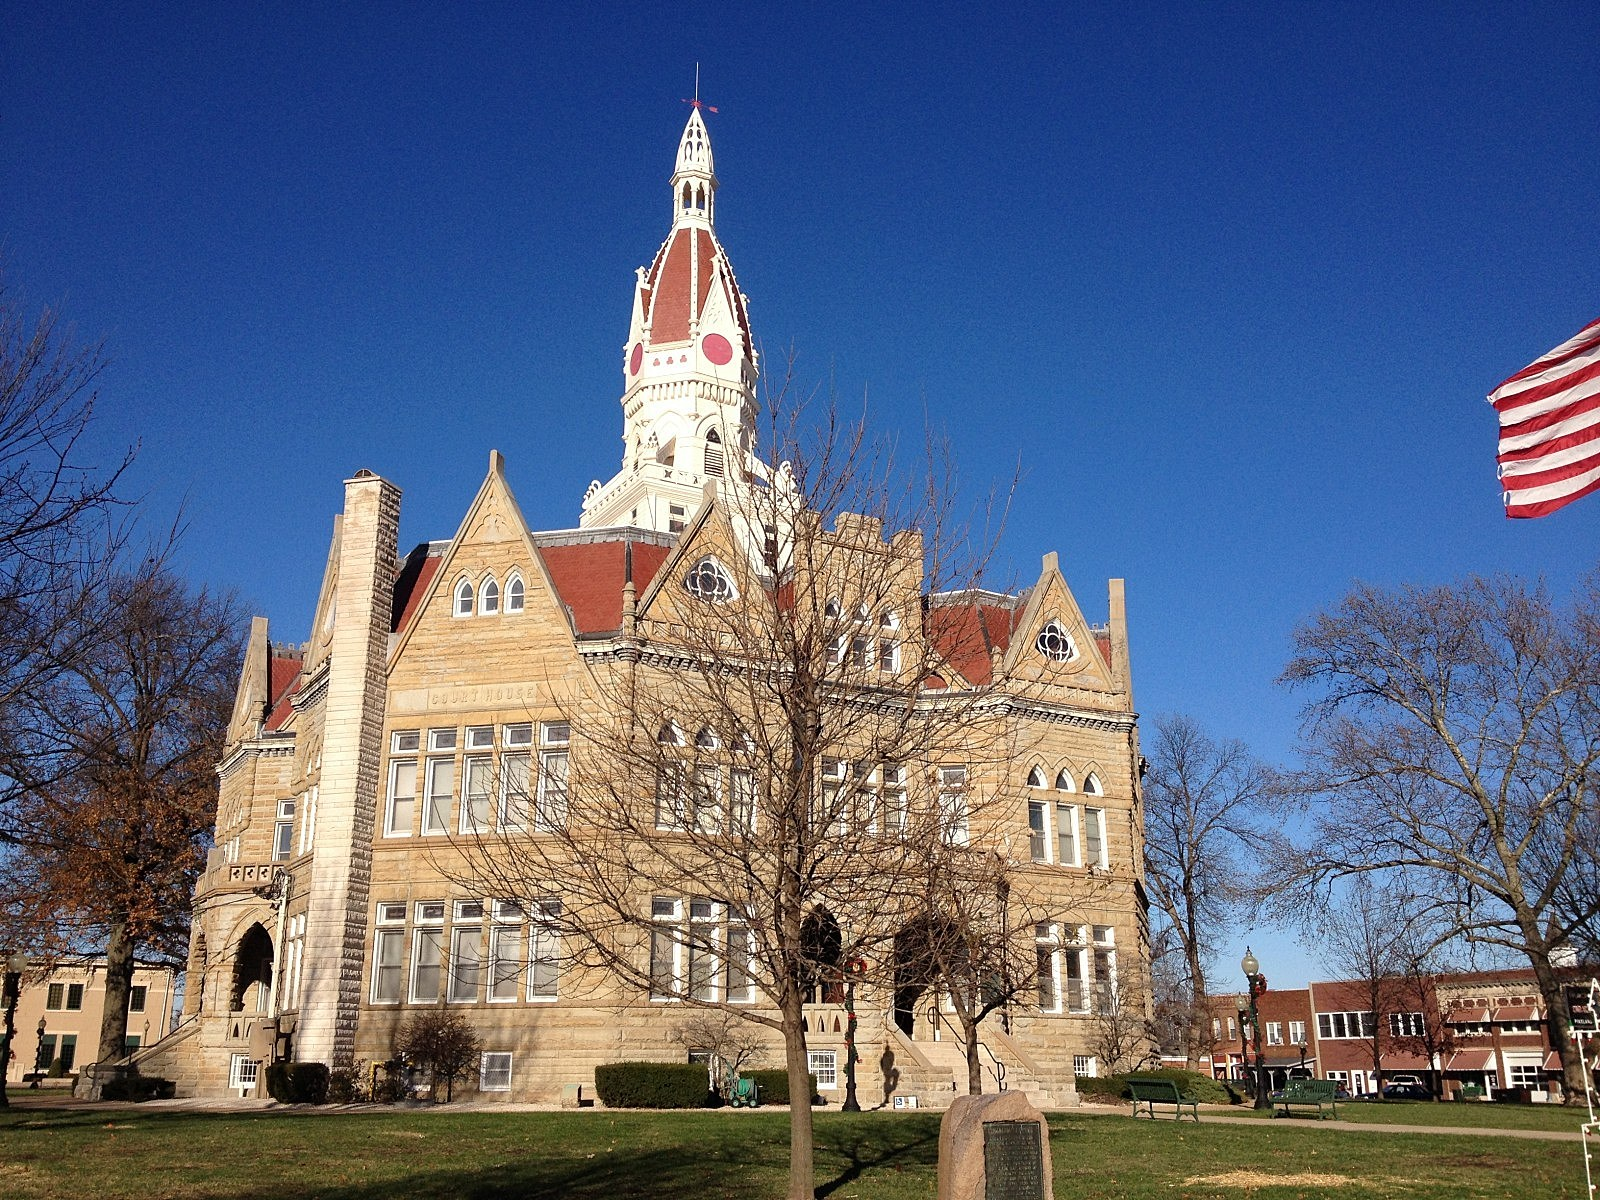 Pike County Courthouse - Pittsfield, Illinois